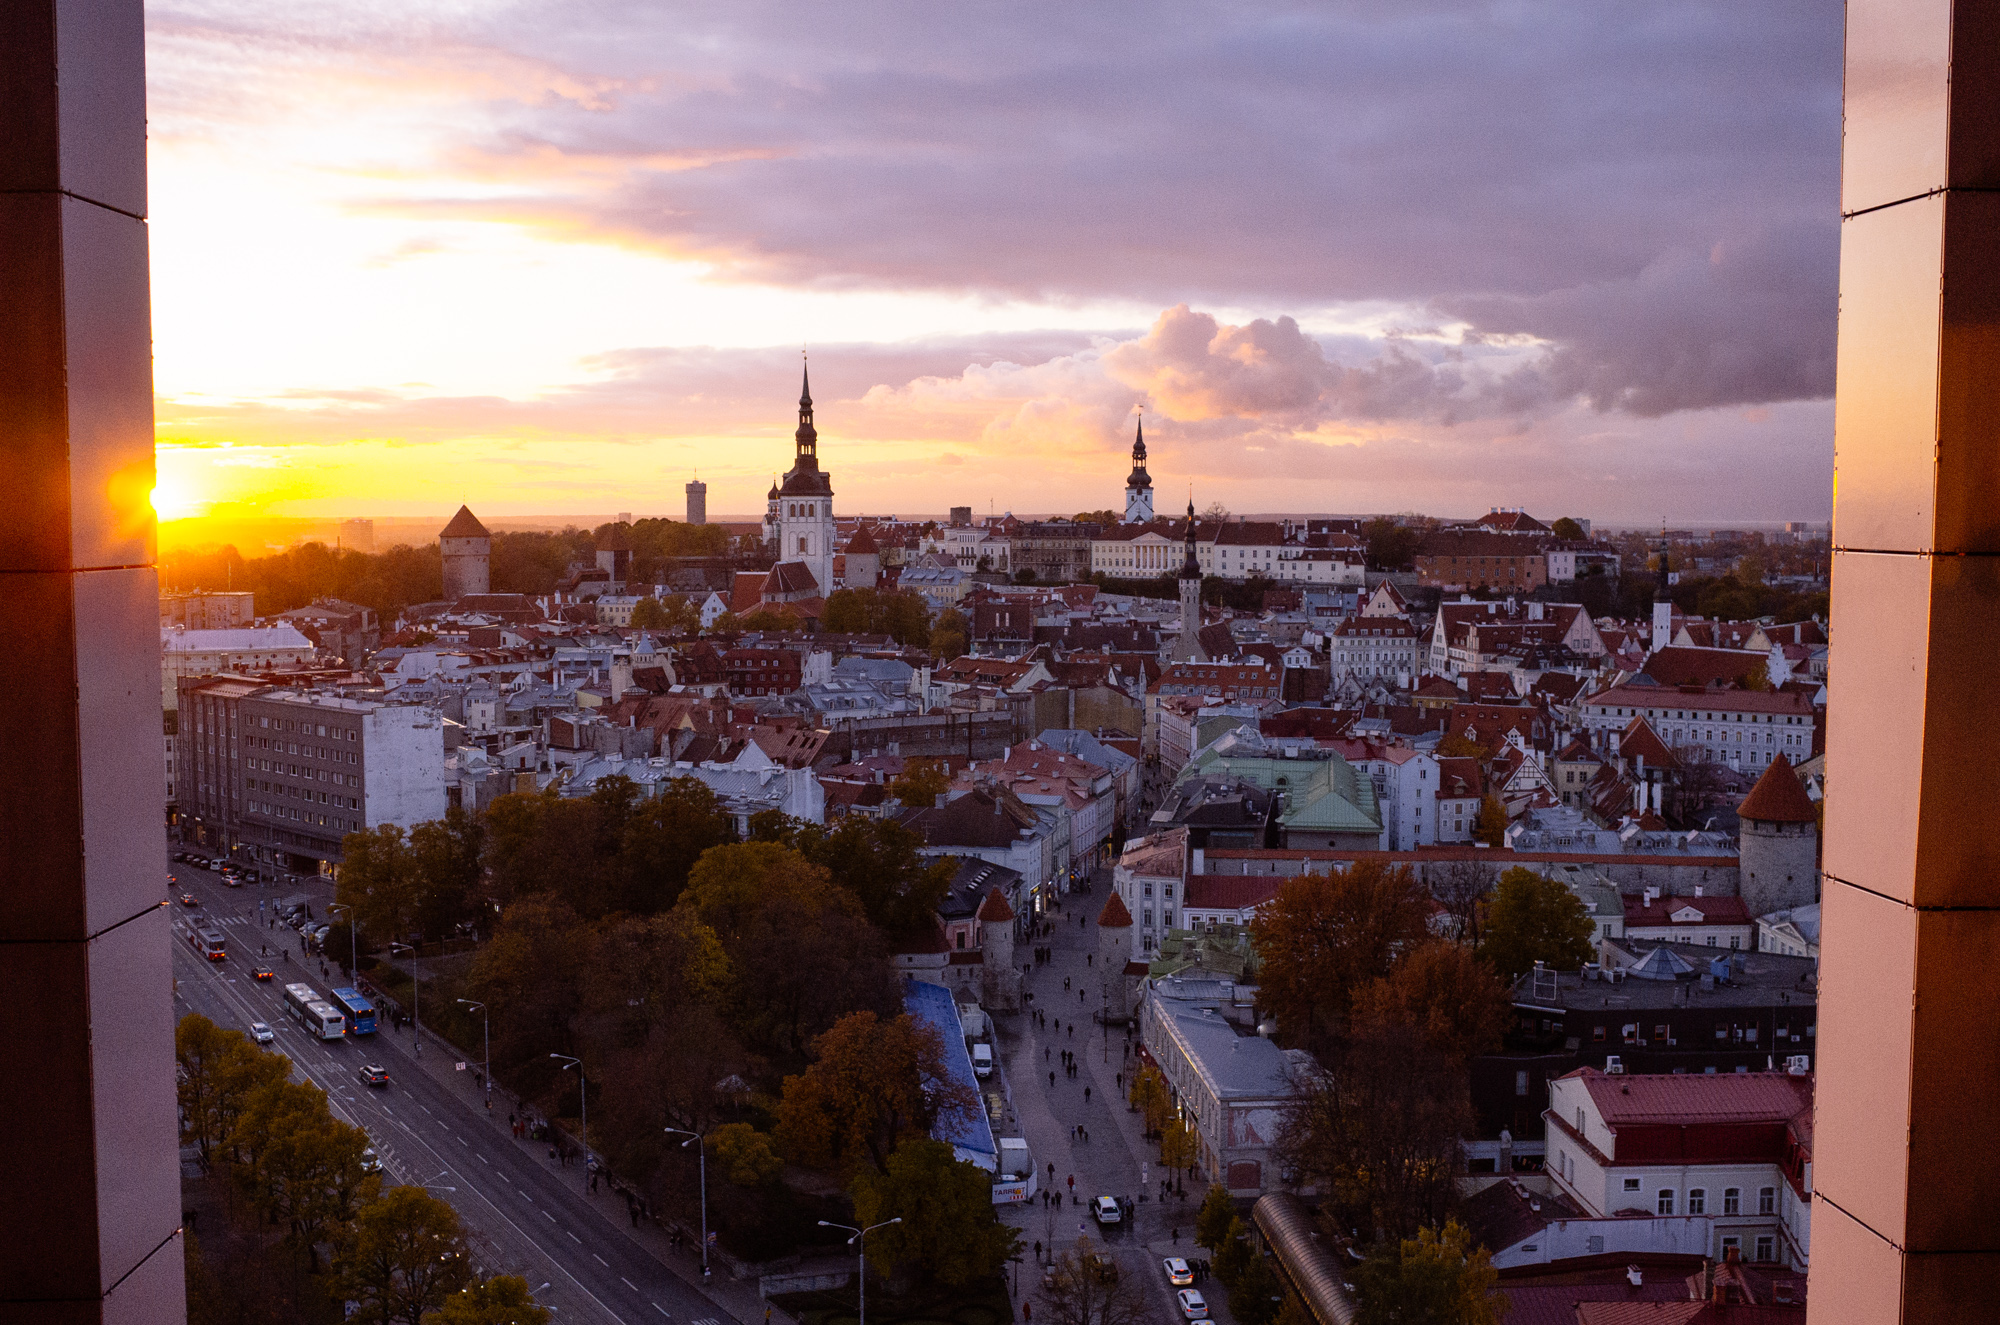 Watching sunset over Old Town Tallinn from the 13th floor of Hotel Viru.